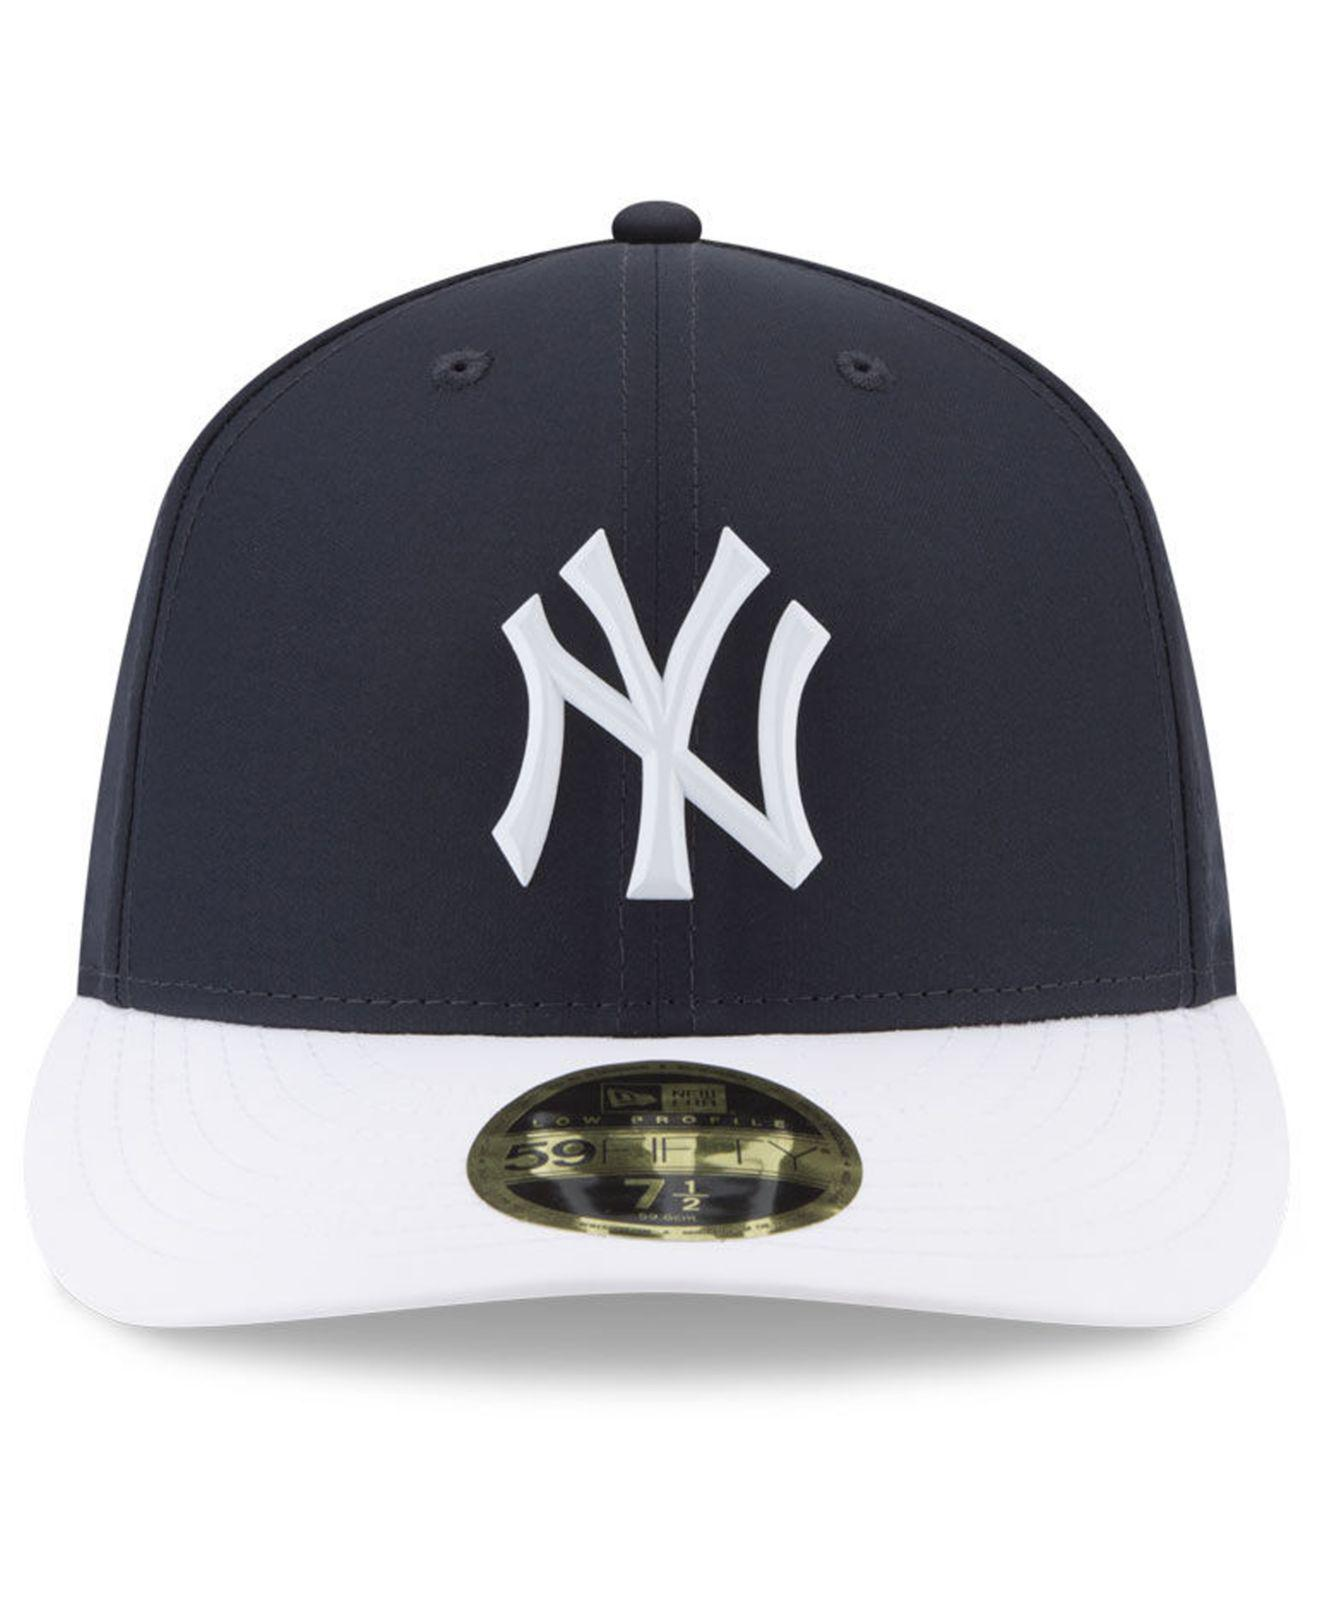 f37645e9dedeba Lyst - KTZ New York Yankees Spring Training Pro Light 59fifty Fitted Cap in  Blue for Men - Save 63%